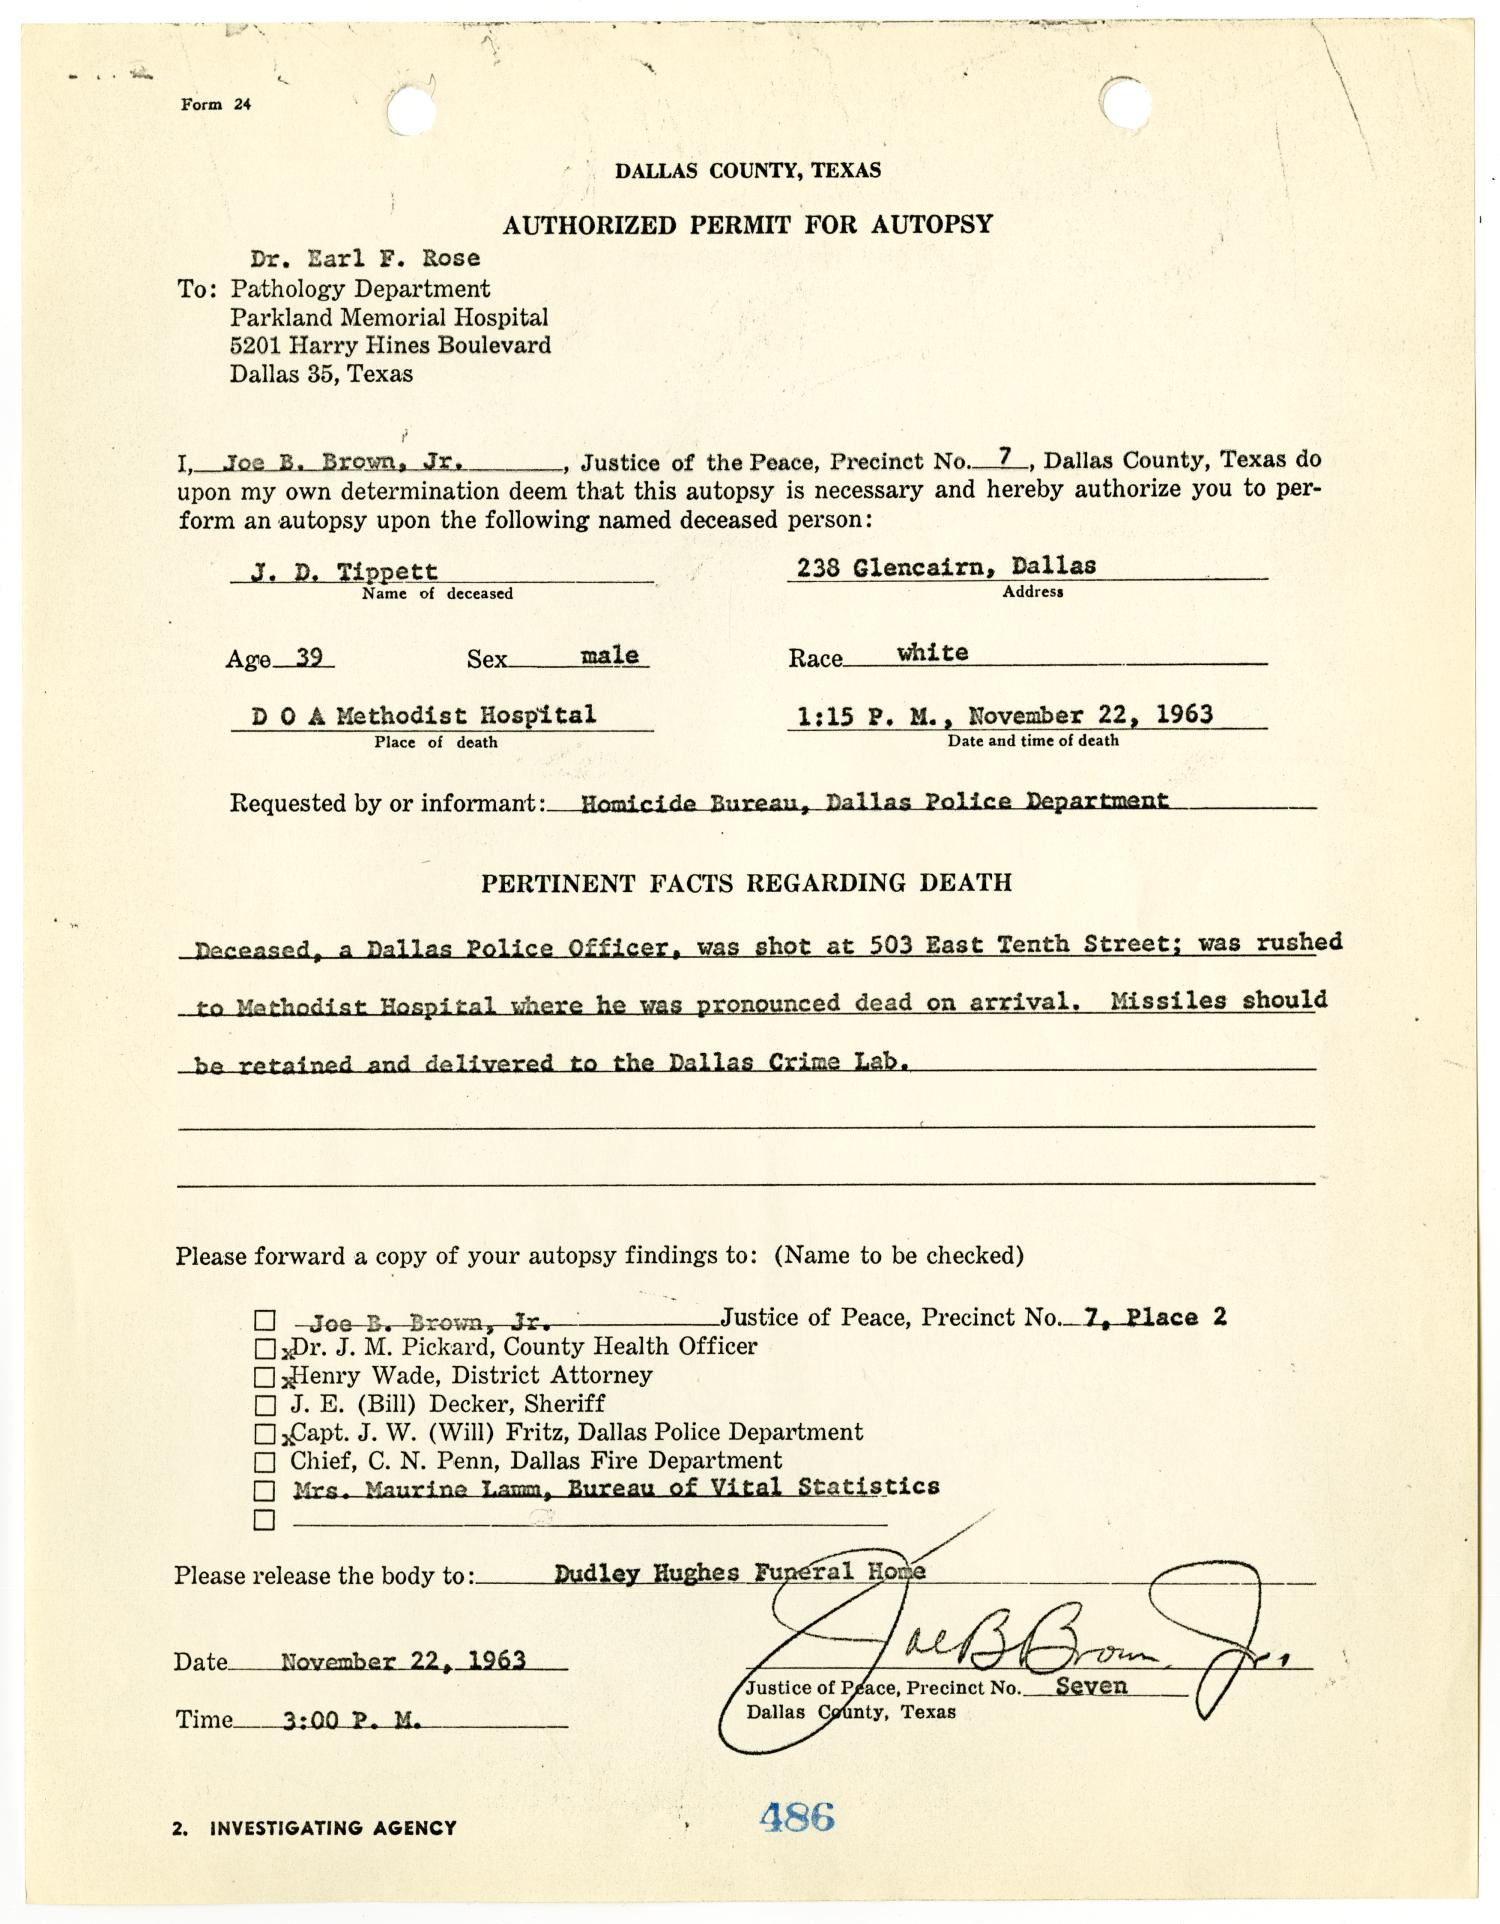 Autopsy report on officer j d tippit by earl f rose 1 page autopsy report on officer j d tippit by earl f rose 1 page 7 of 28 the portal to texas history aiddatafo Image collections